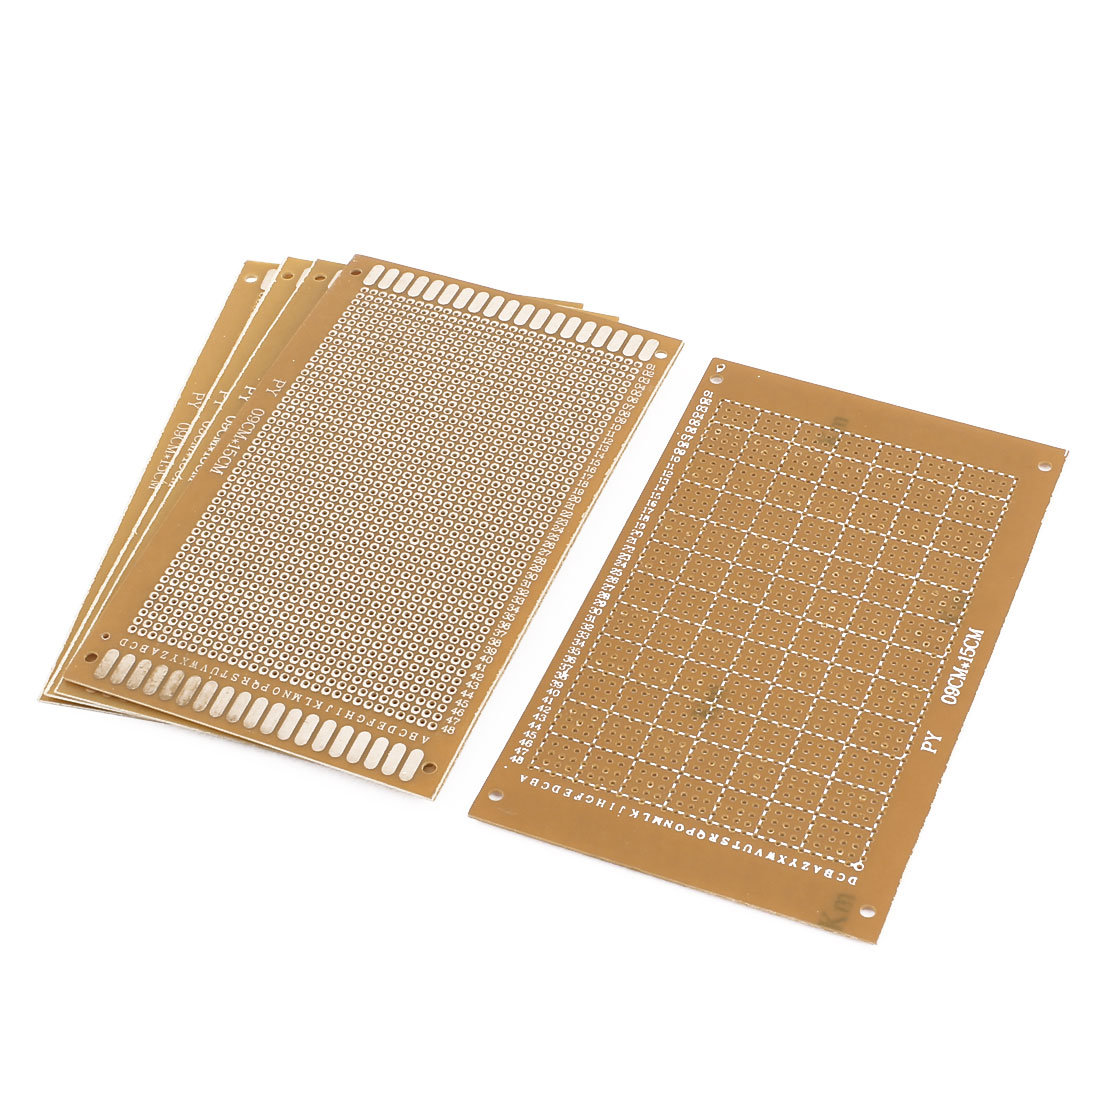 5 Pcs Single Sided Prototype Solderable Paper Universal PCB Board 9x15cm